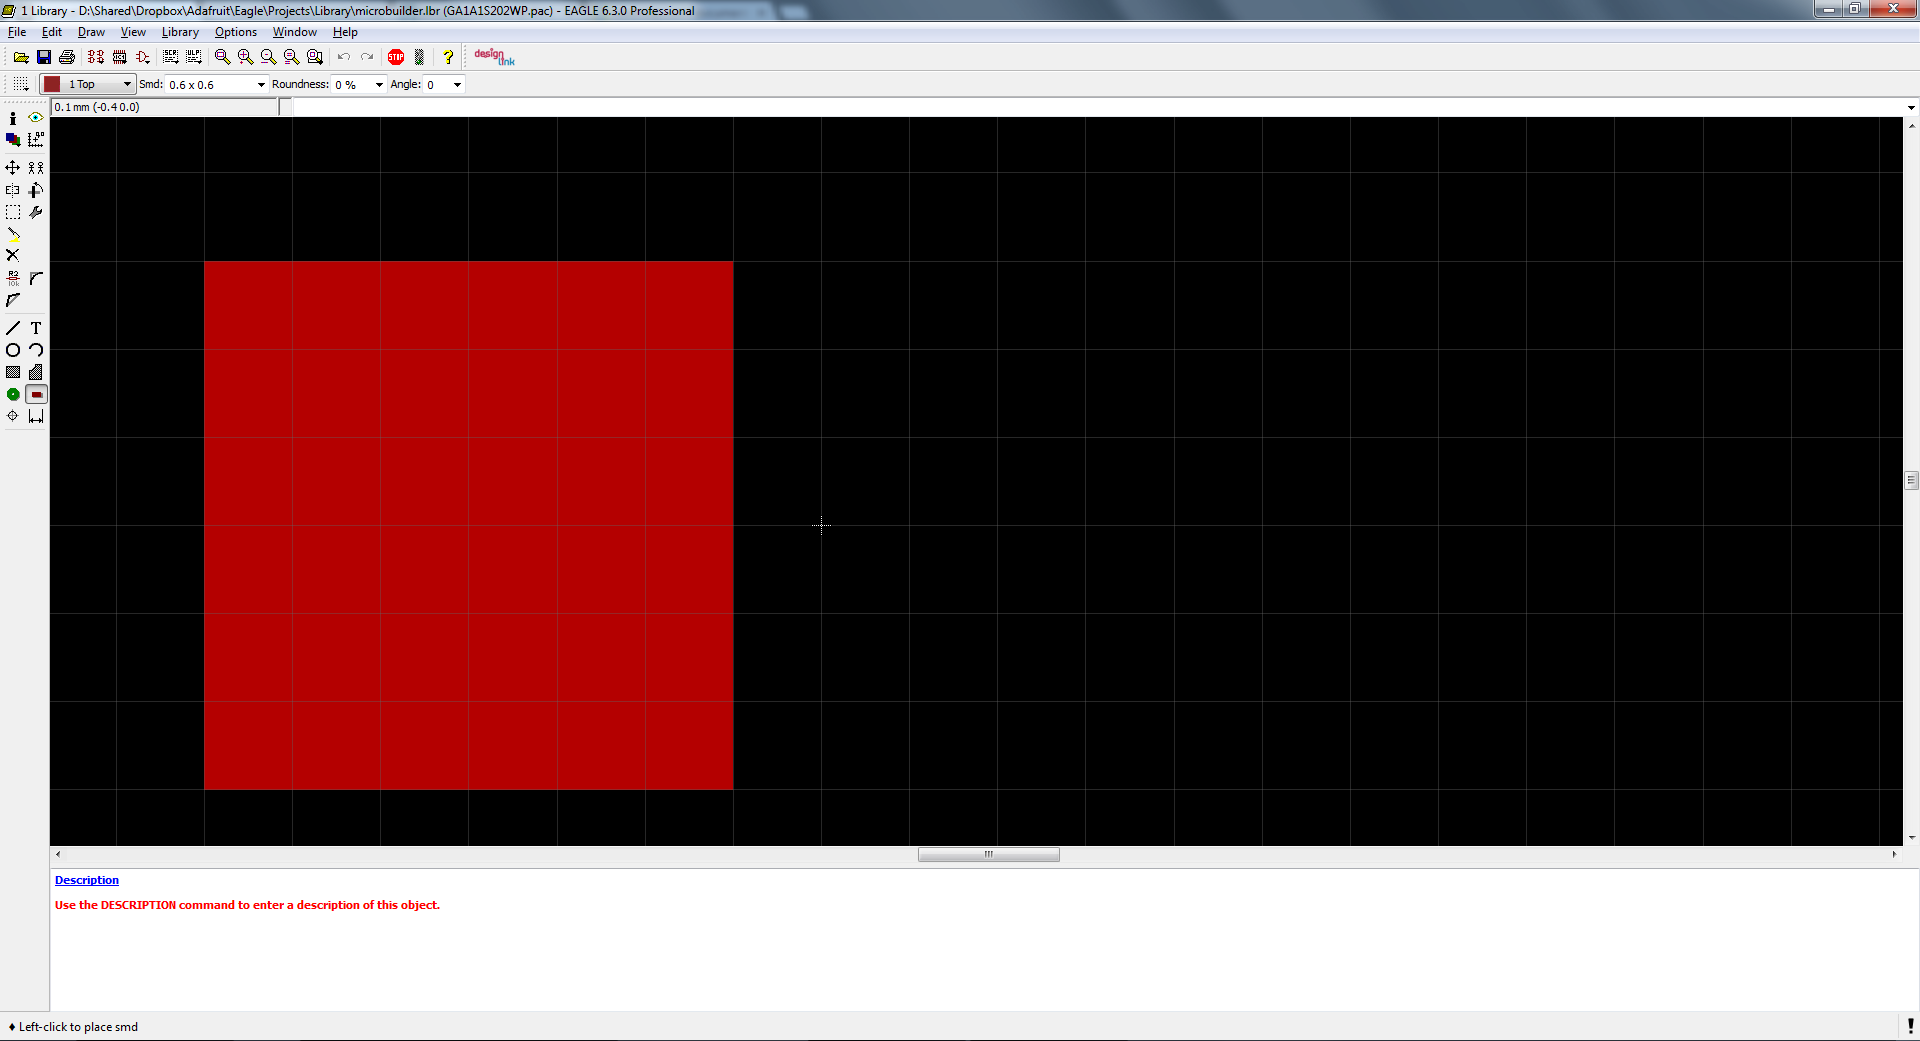 manufacturing_GridPosition_full.png